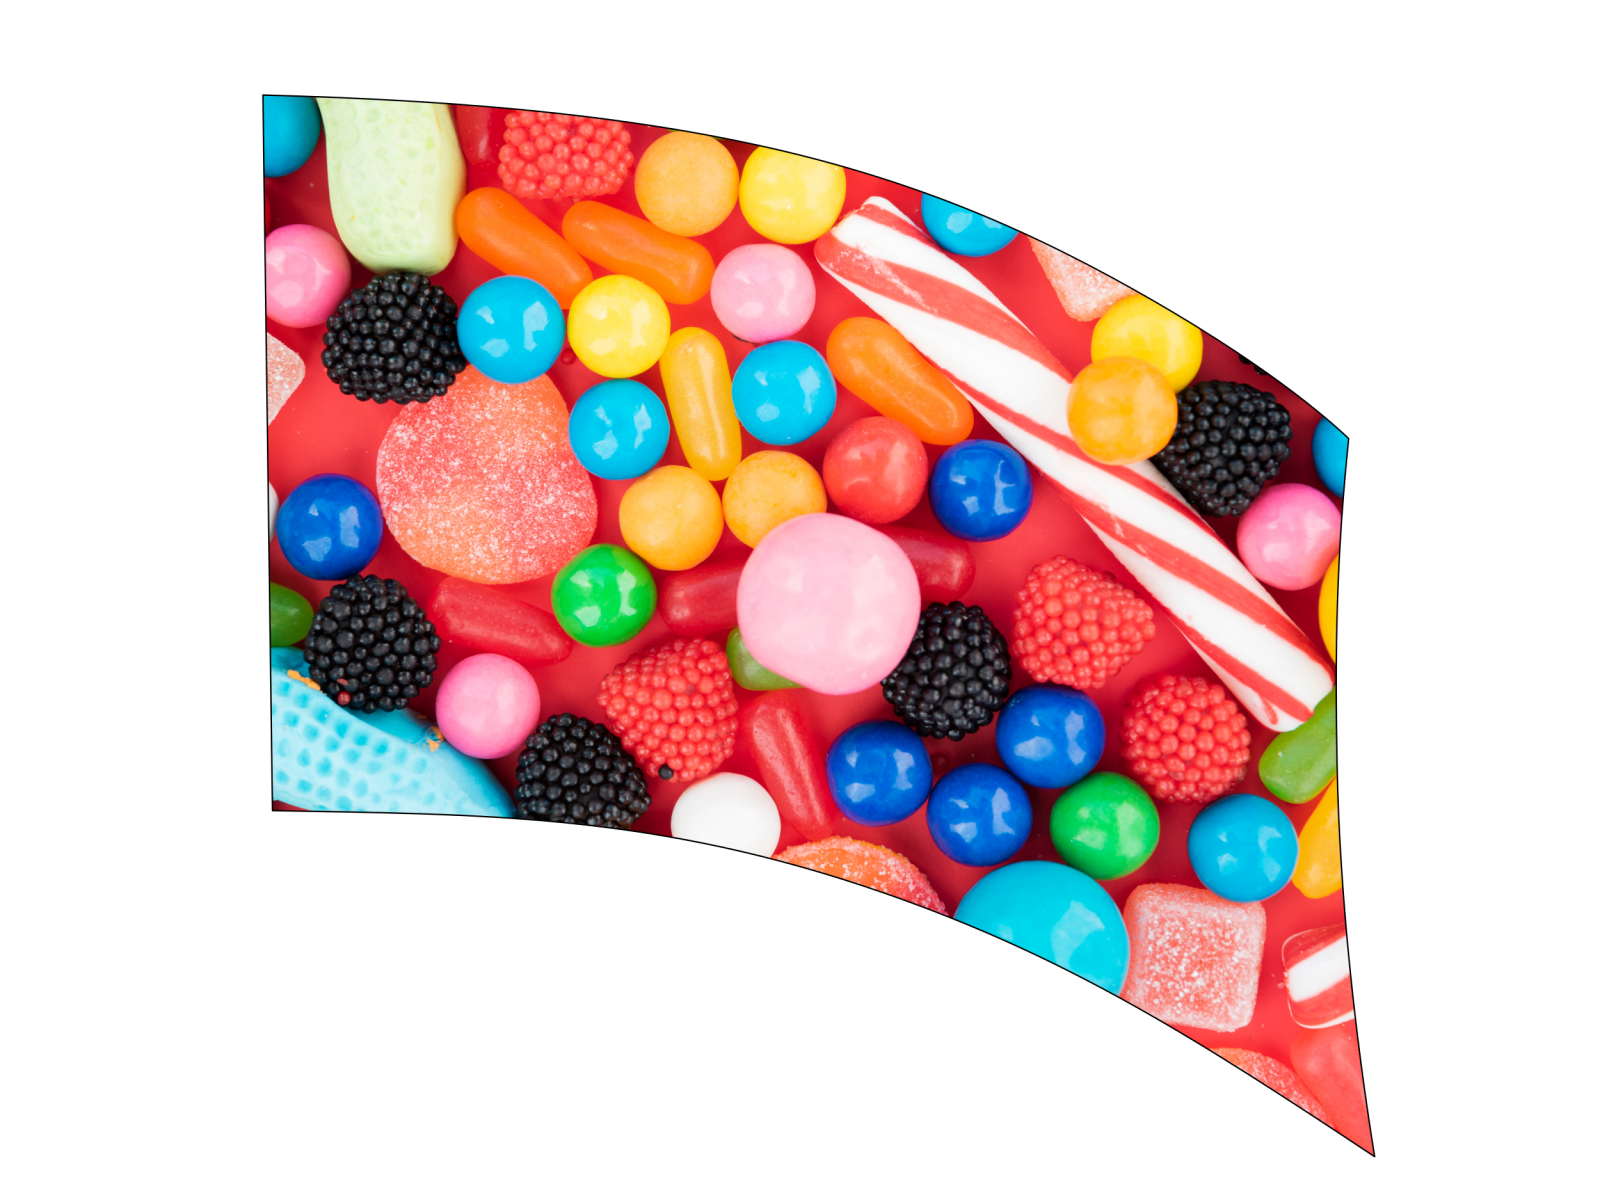 060604s - 36x52 Standard Candy 4